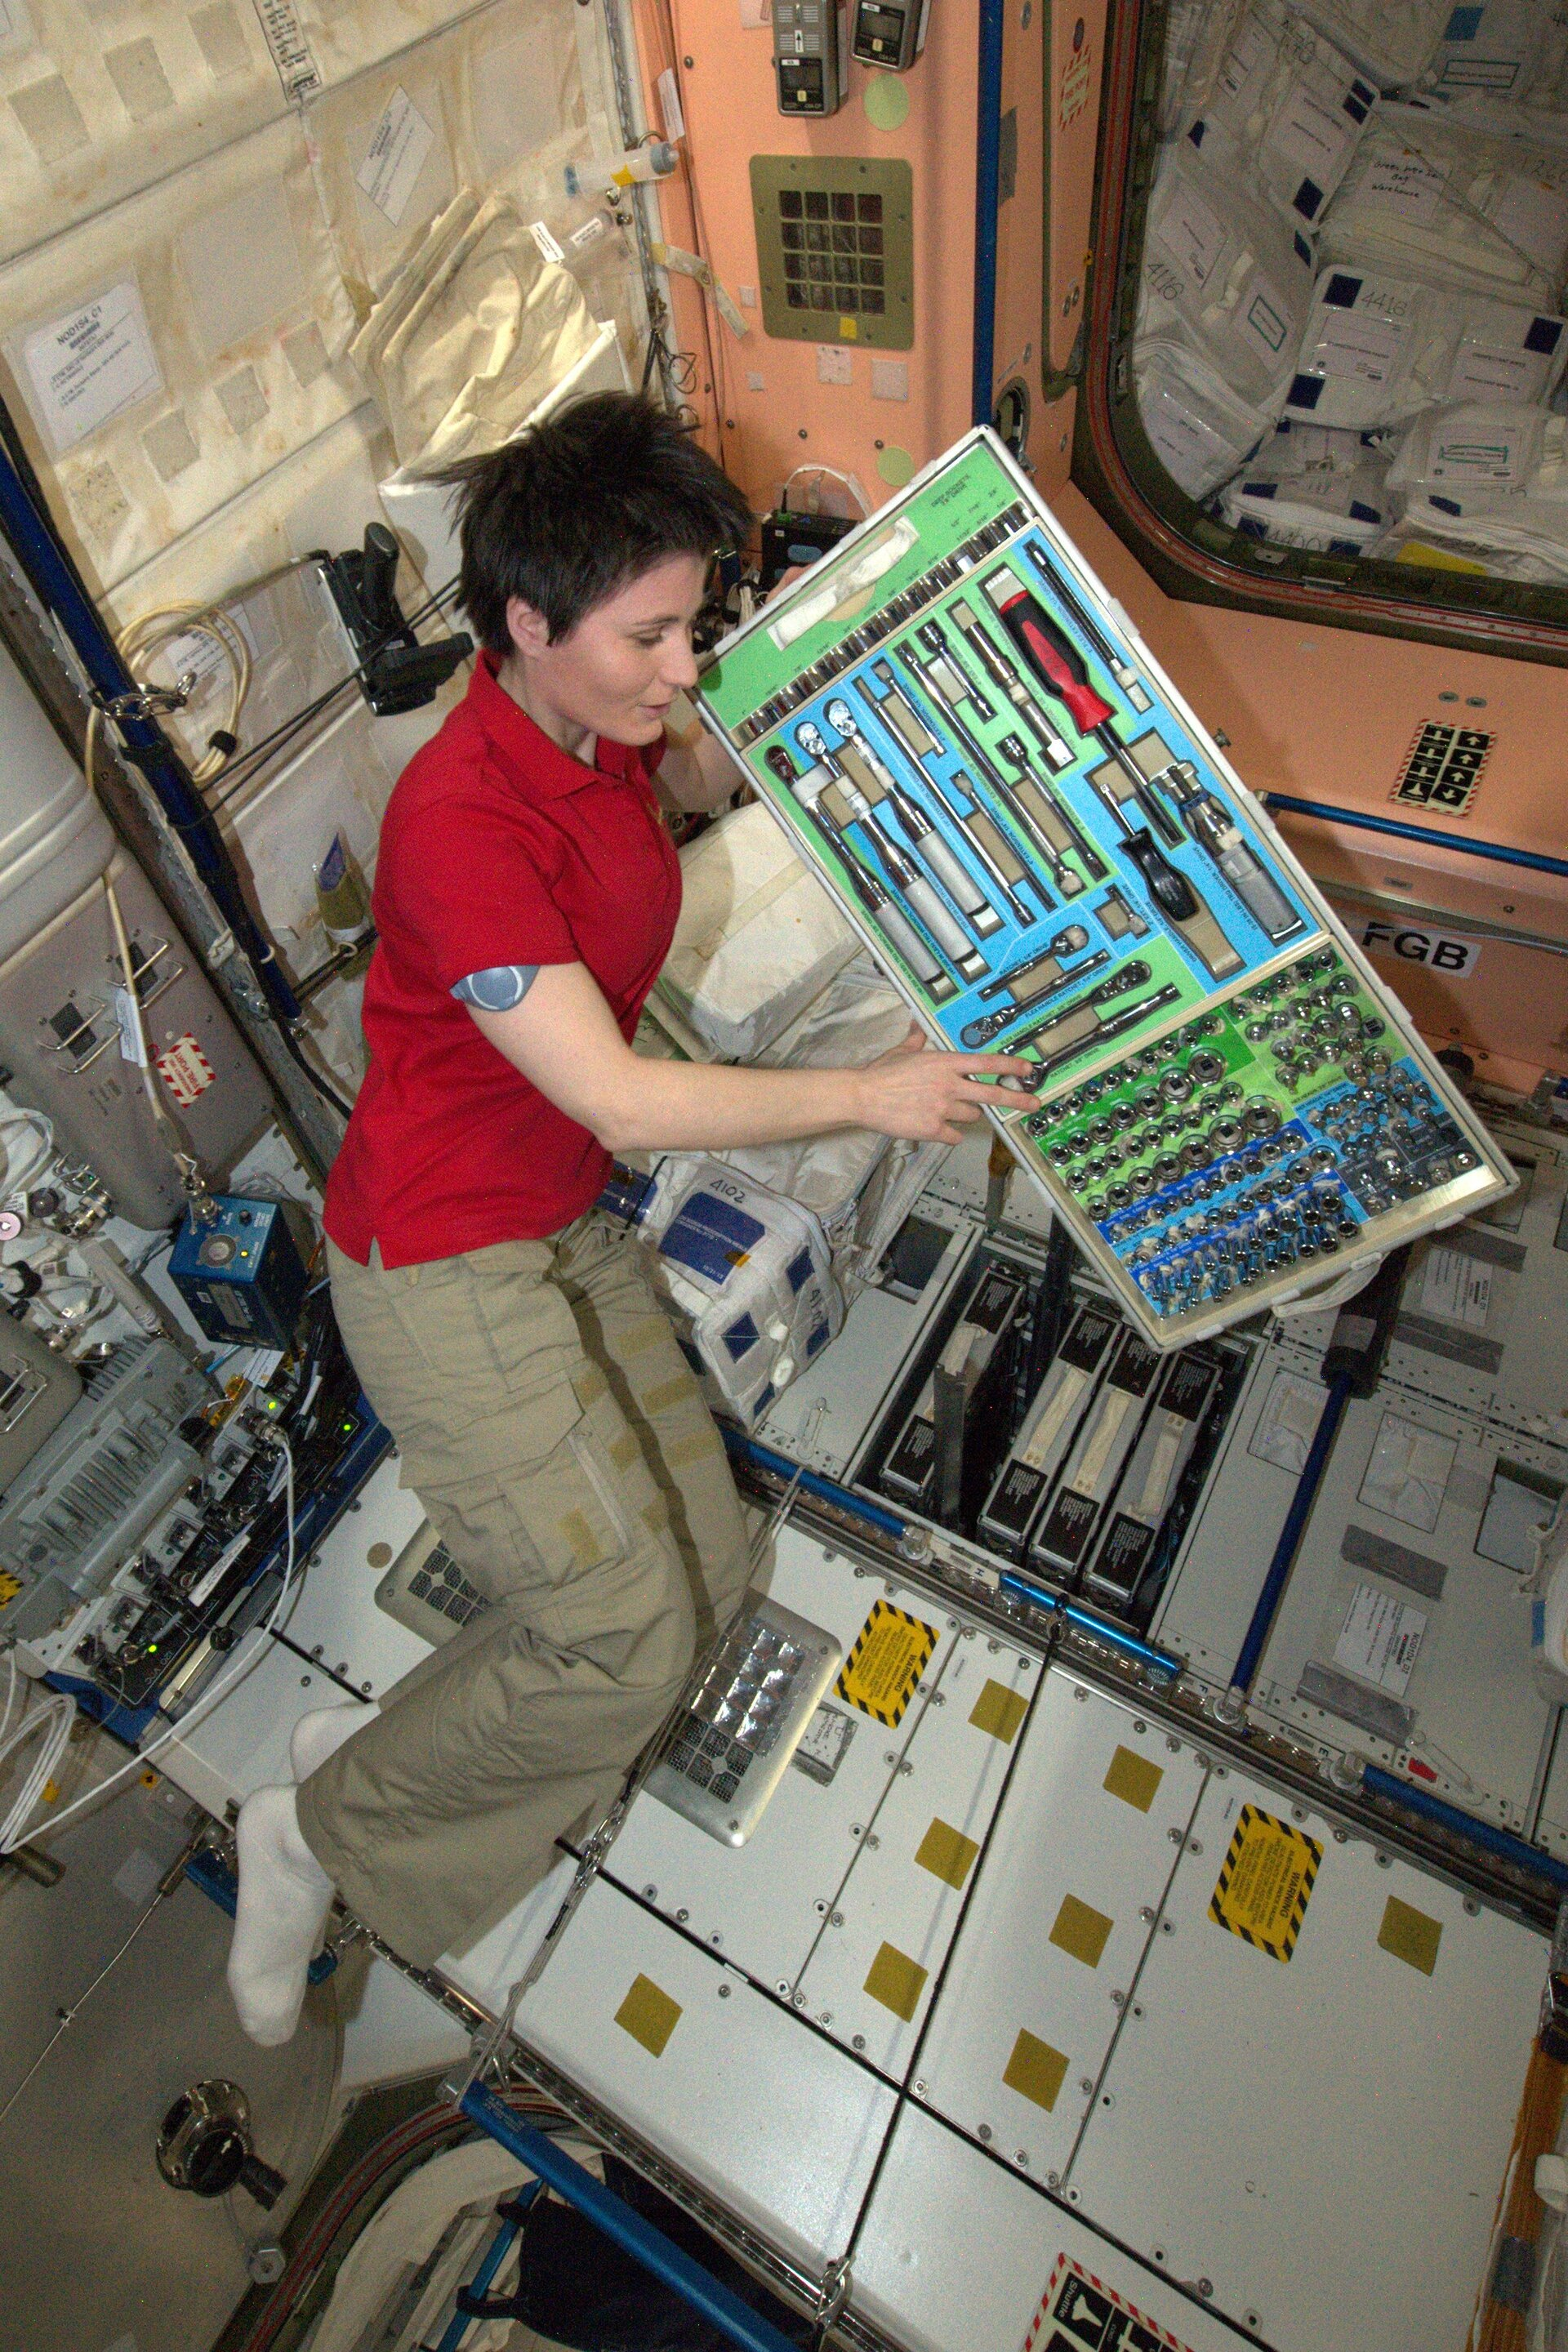 Samantha working in Columbus space laboratory